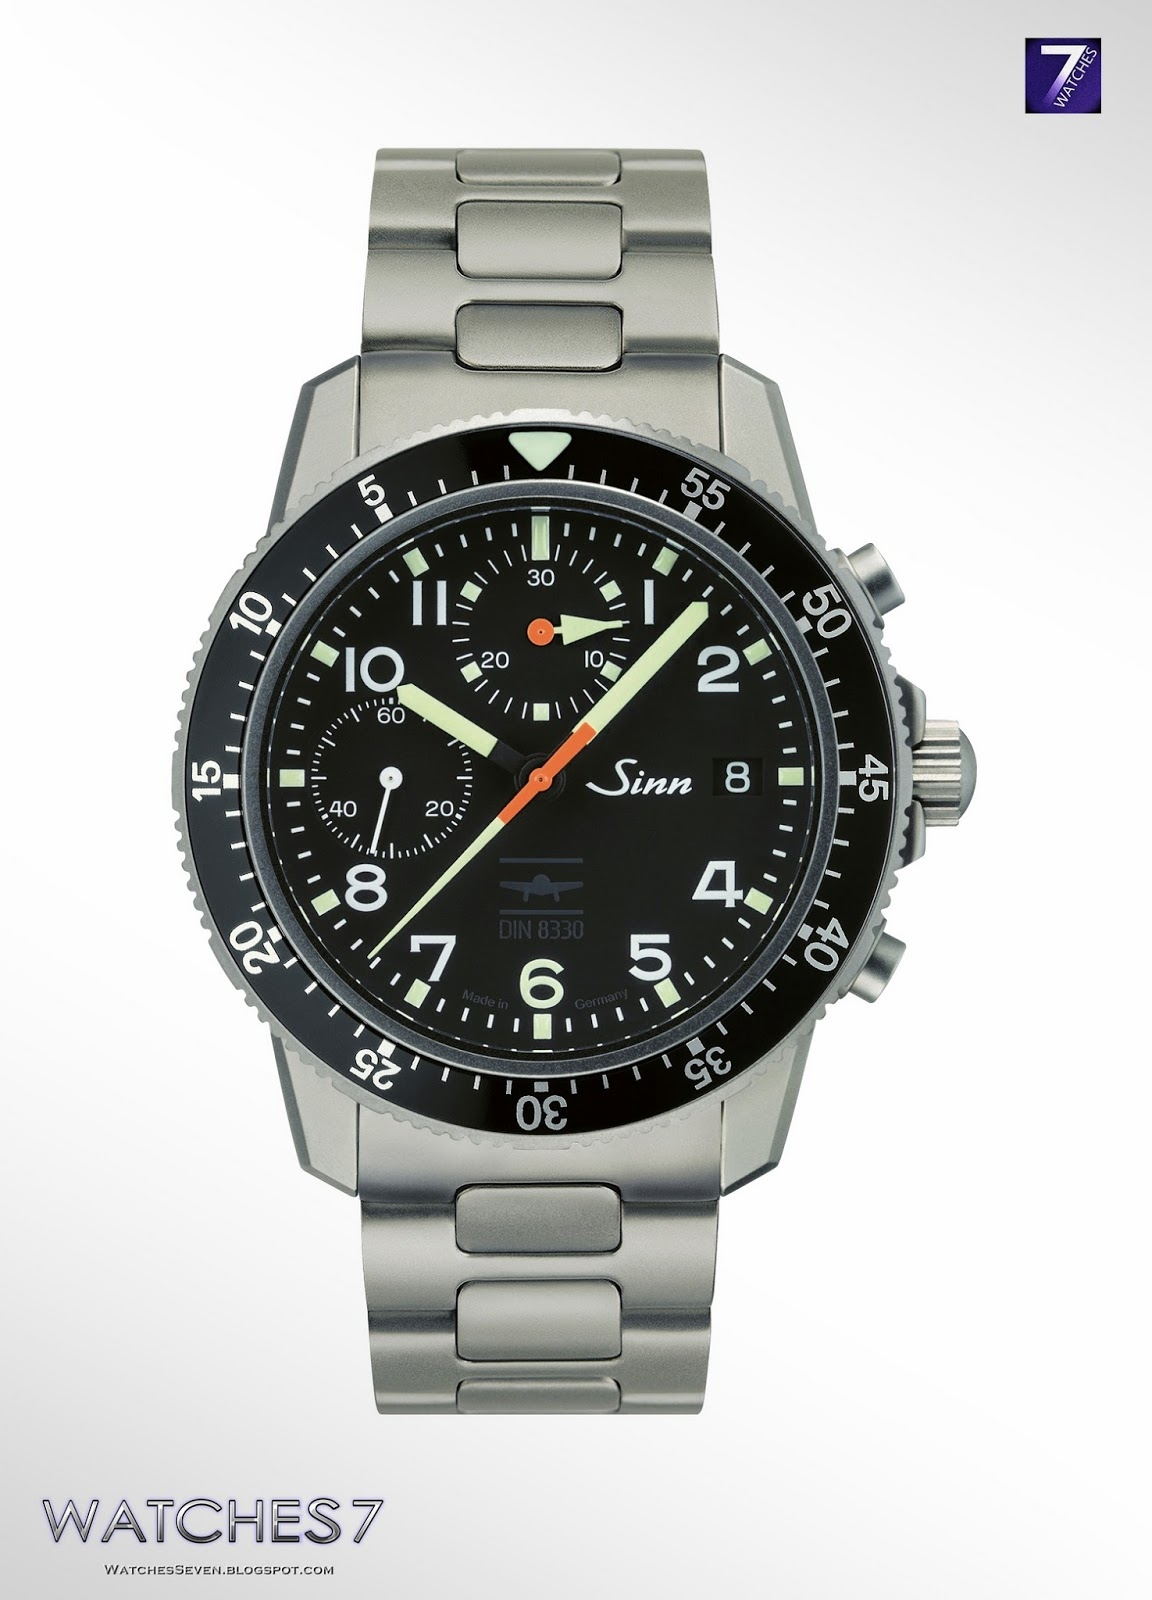 Watches 7: SINN watches pass DIN 8330 Horology